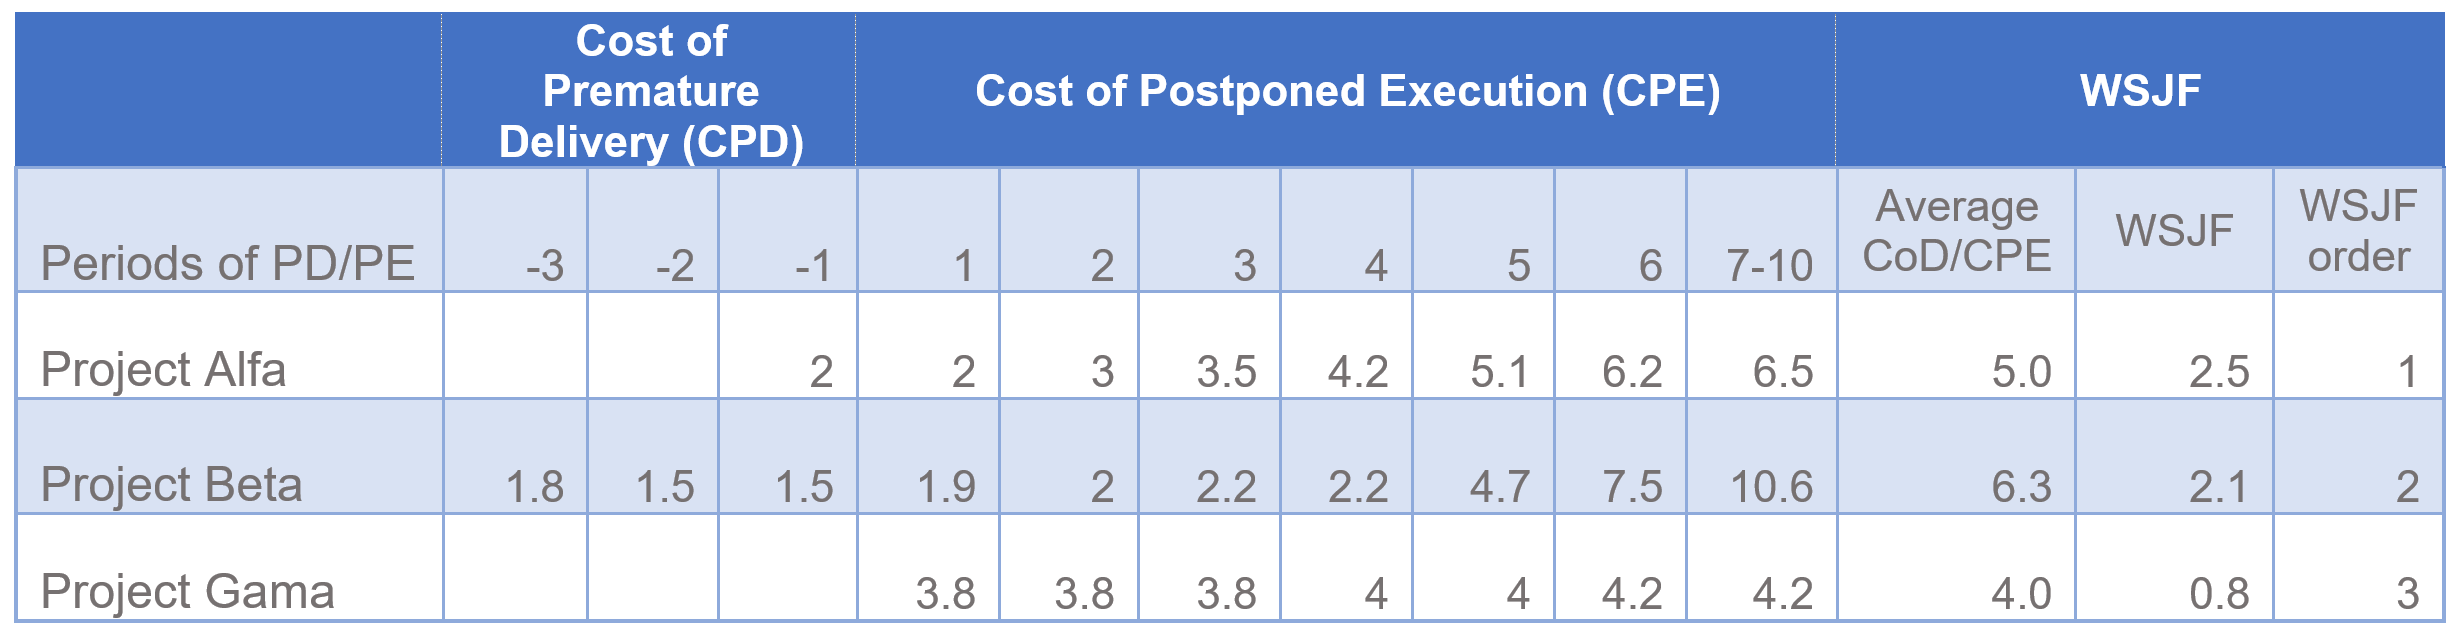 Cost of Time and WSJF - Case Study